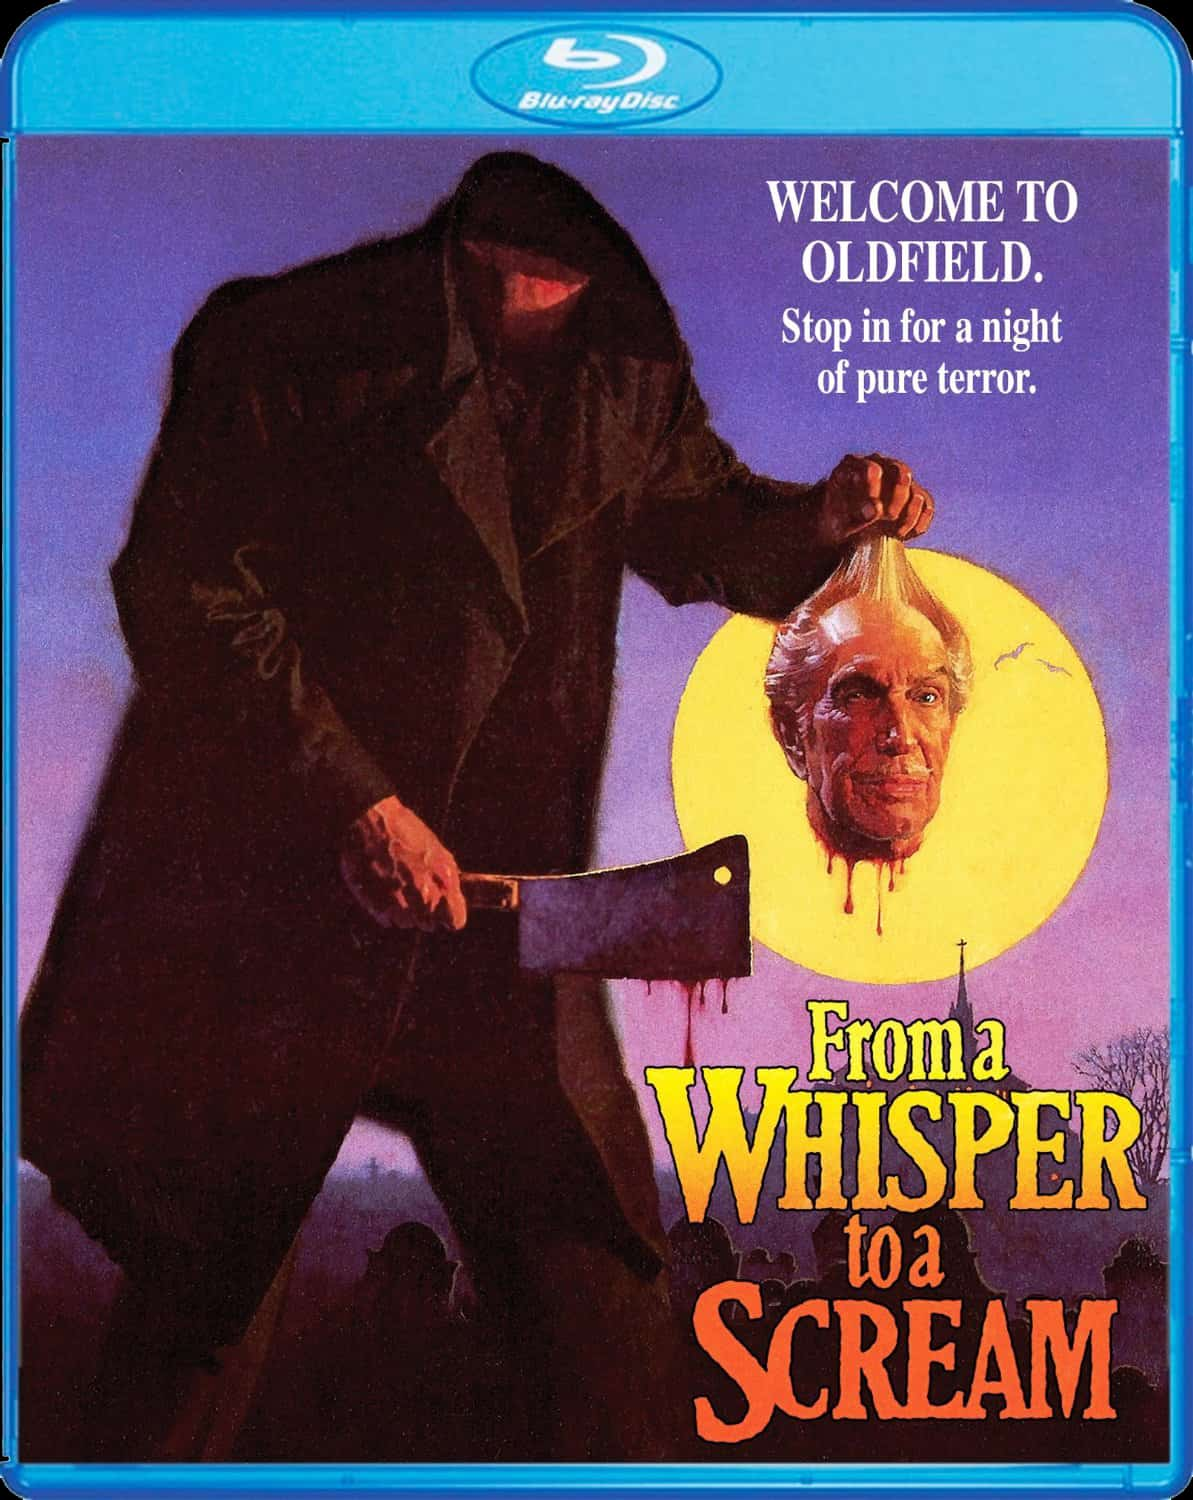 from a whisper to a scream - Jeff Burr Talks From a Whisper to a Scream